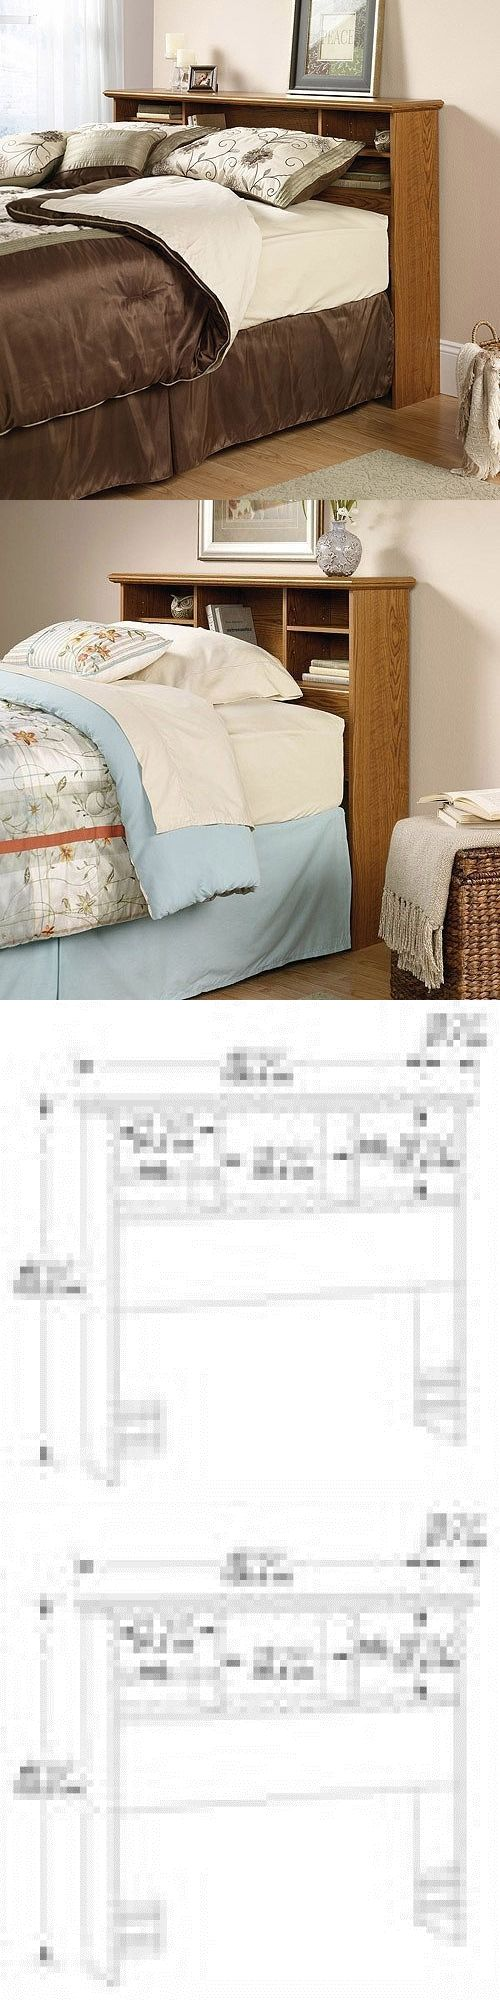 Lakeland mills twin over queen bunk bed amp reviews wayfair - Best 20 Bookcase Headboard Ideas On Pinterest Master Bedrooms Small Bed Covers And Small Downstairs Furniture